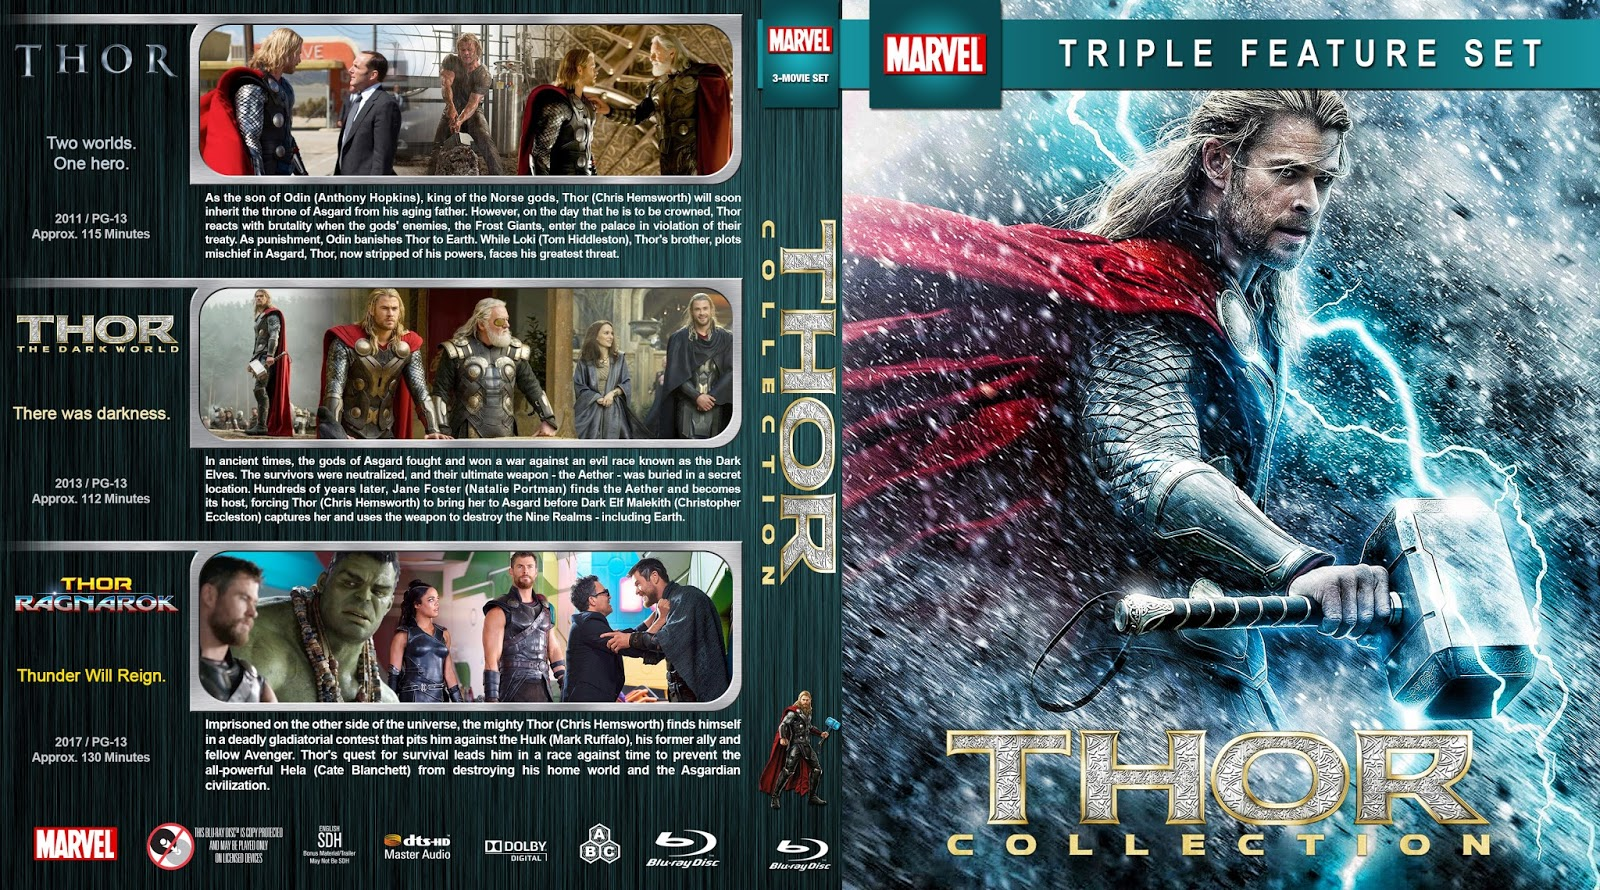 bj share me covers capa blu ray 3 em 1 thor collection 2011 2017. Black Bedroom Furniture Sets. Home Design Ideas